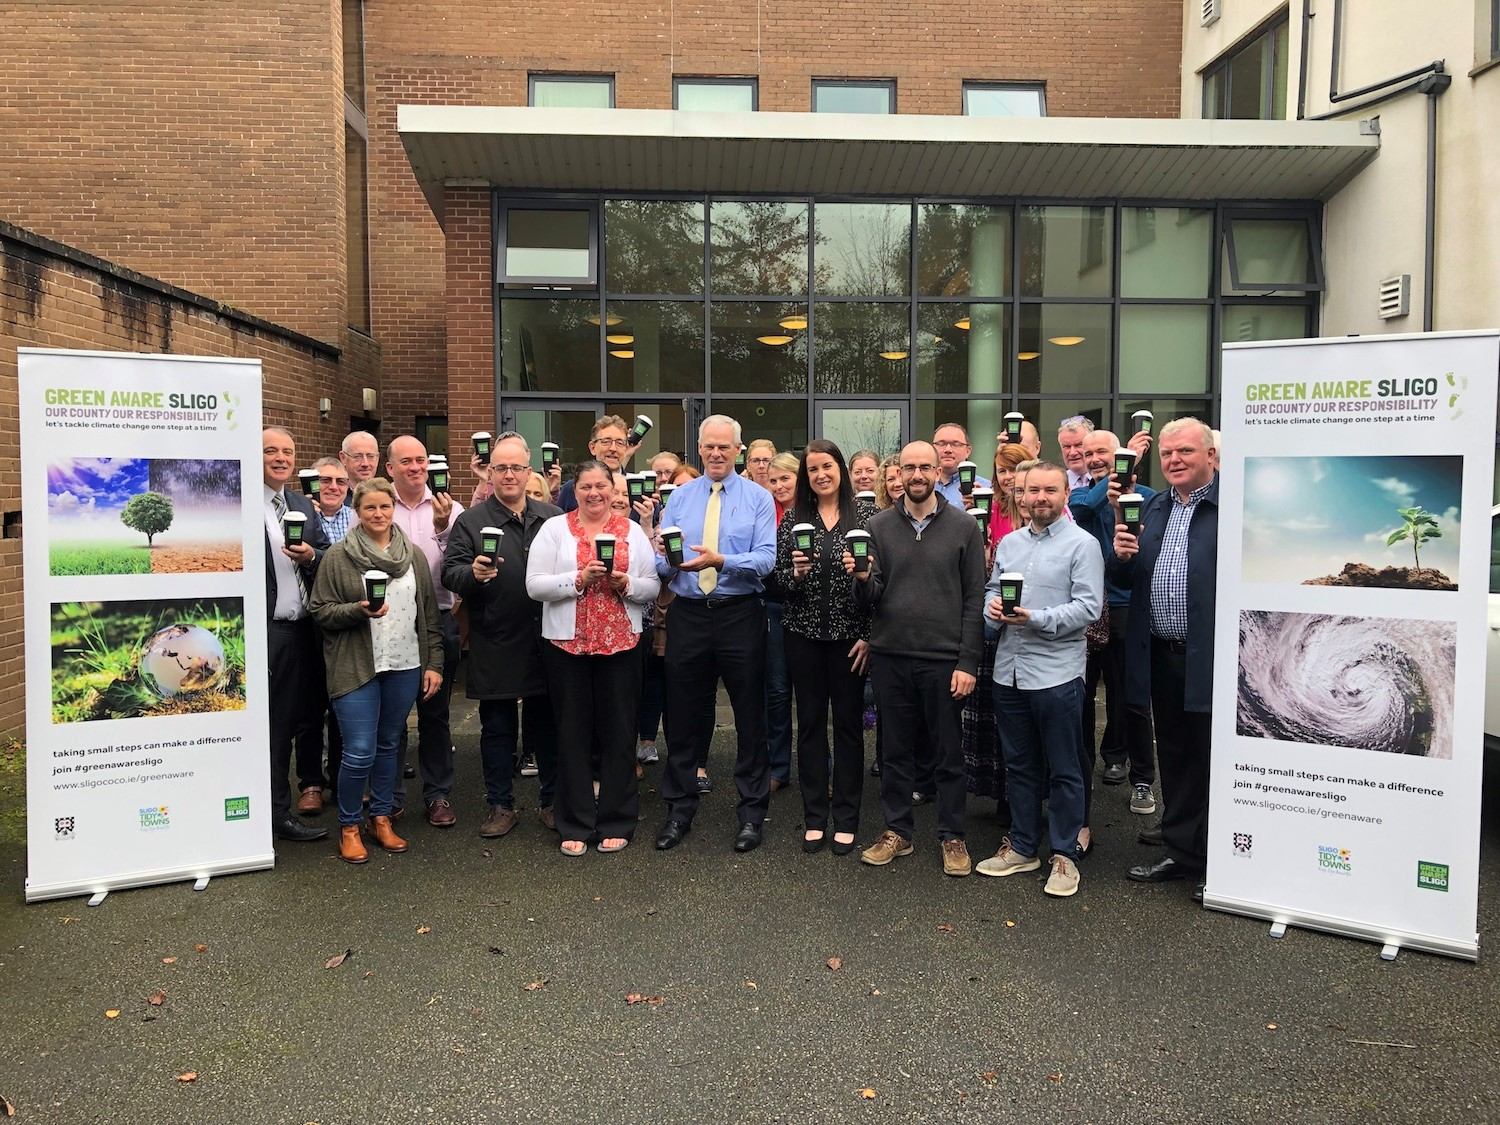 Sligo Co Co keep cups initiative